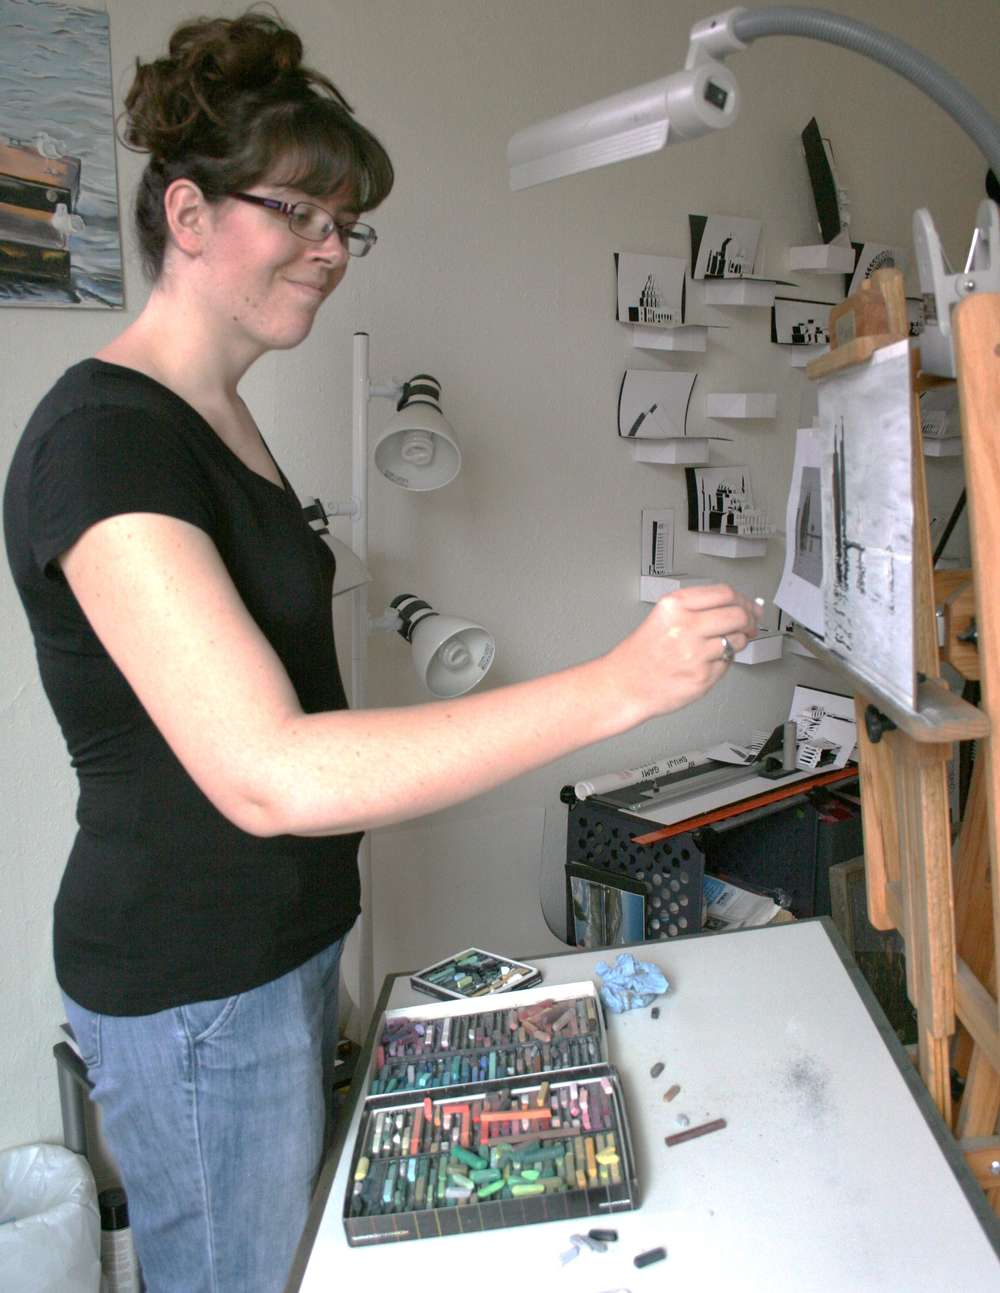 Photo of the artist happily drawing at her easel.